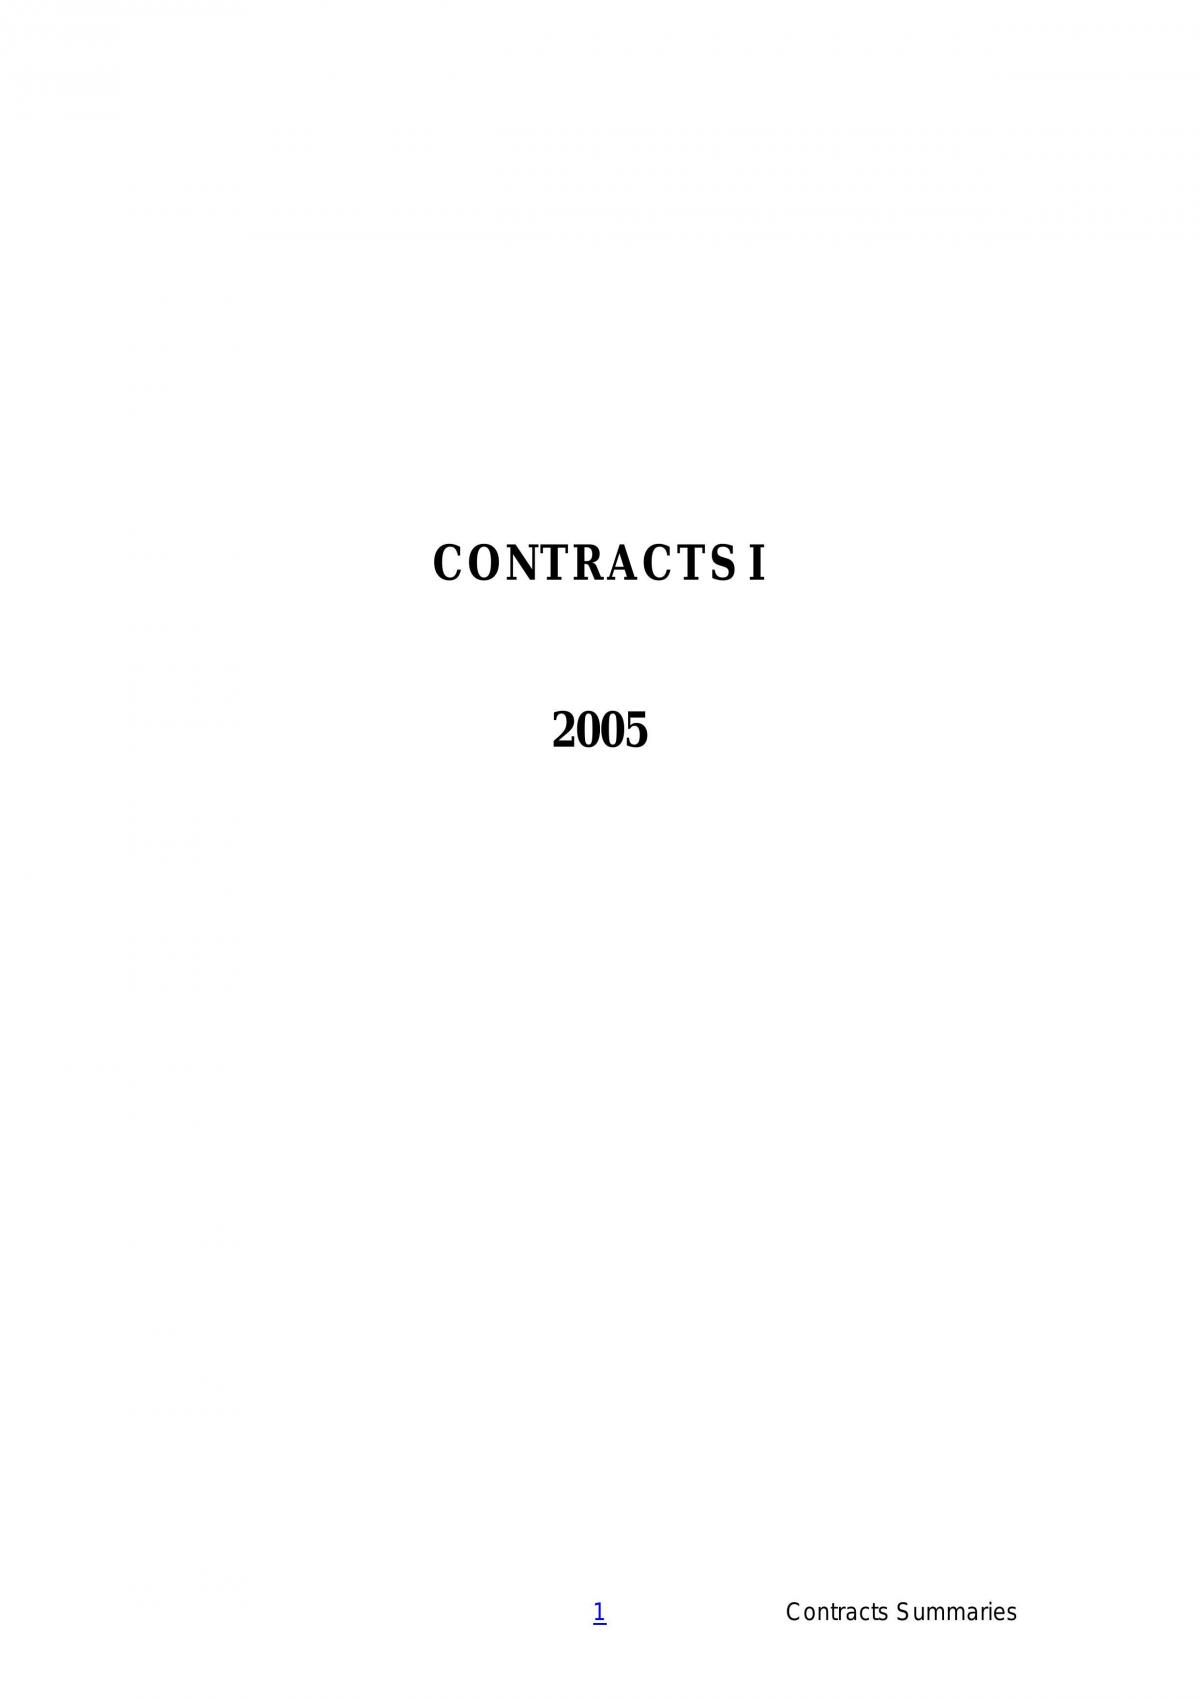 2005 Contracts - Page 1